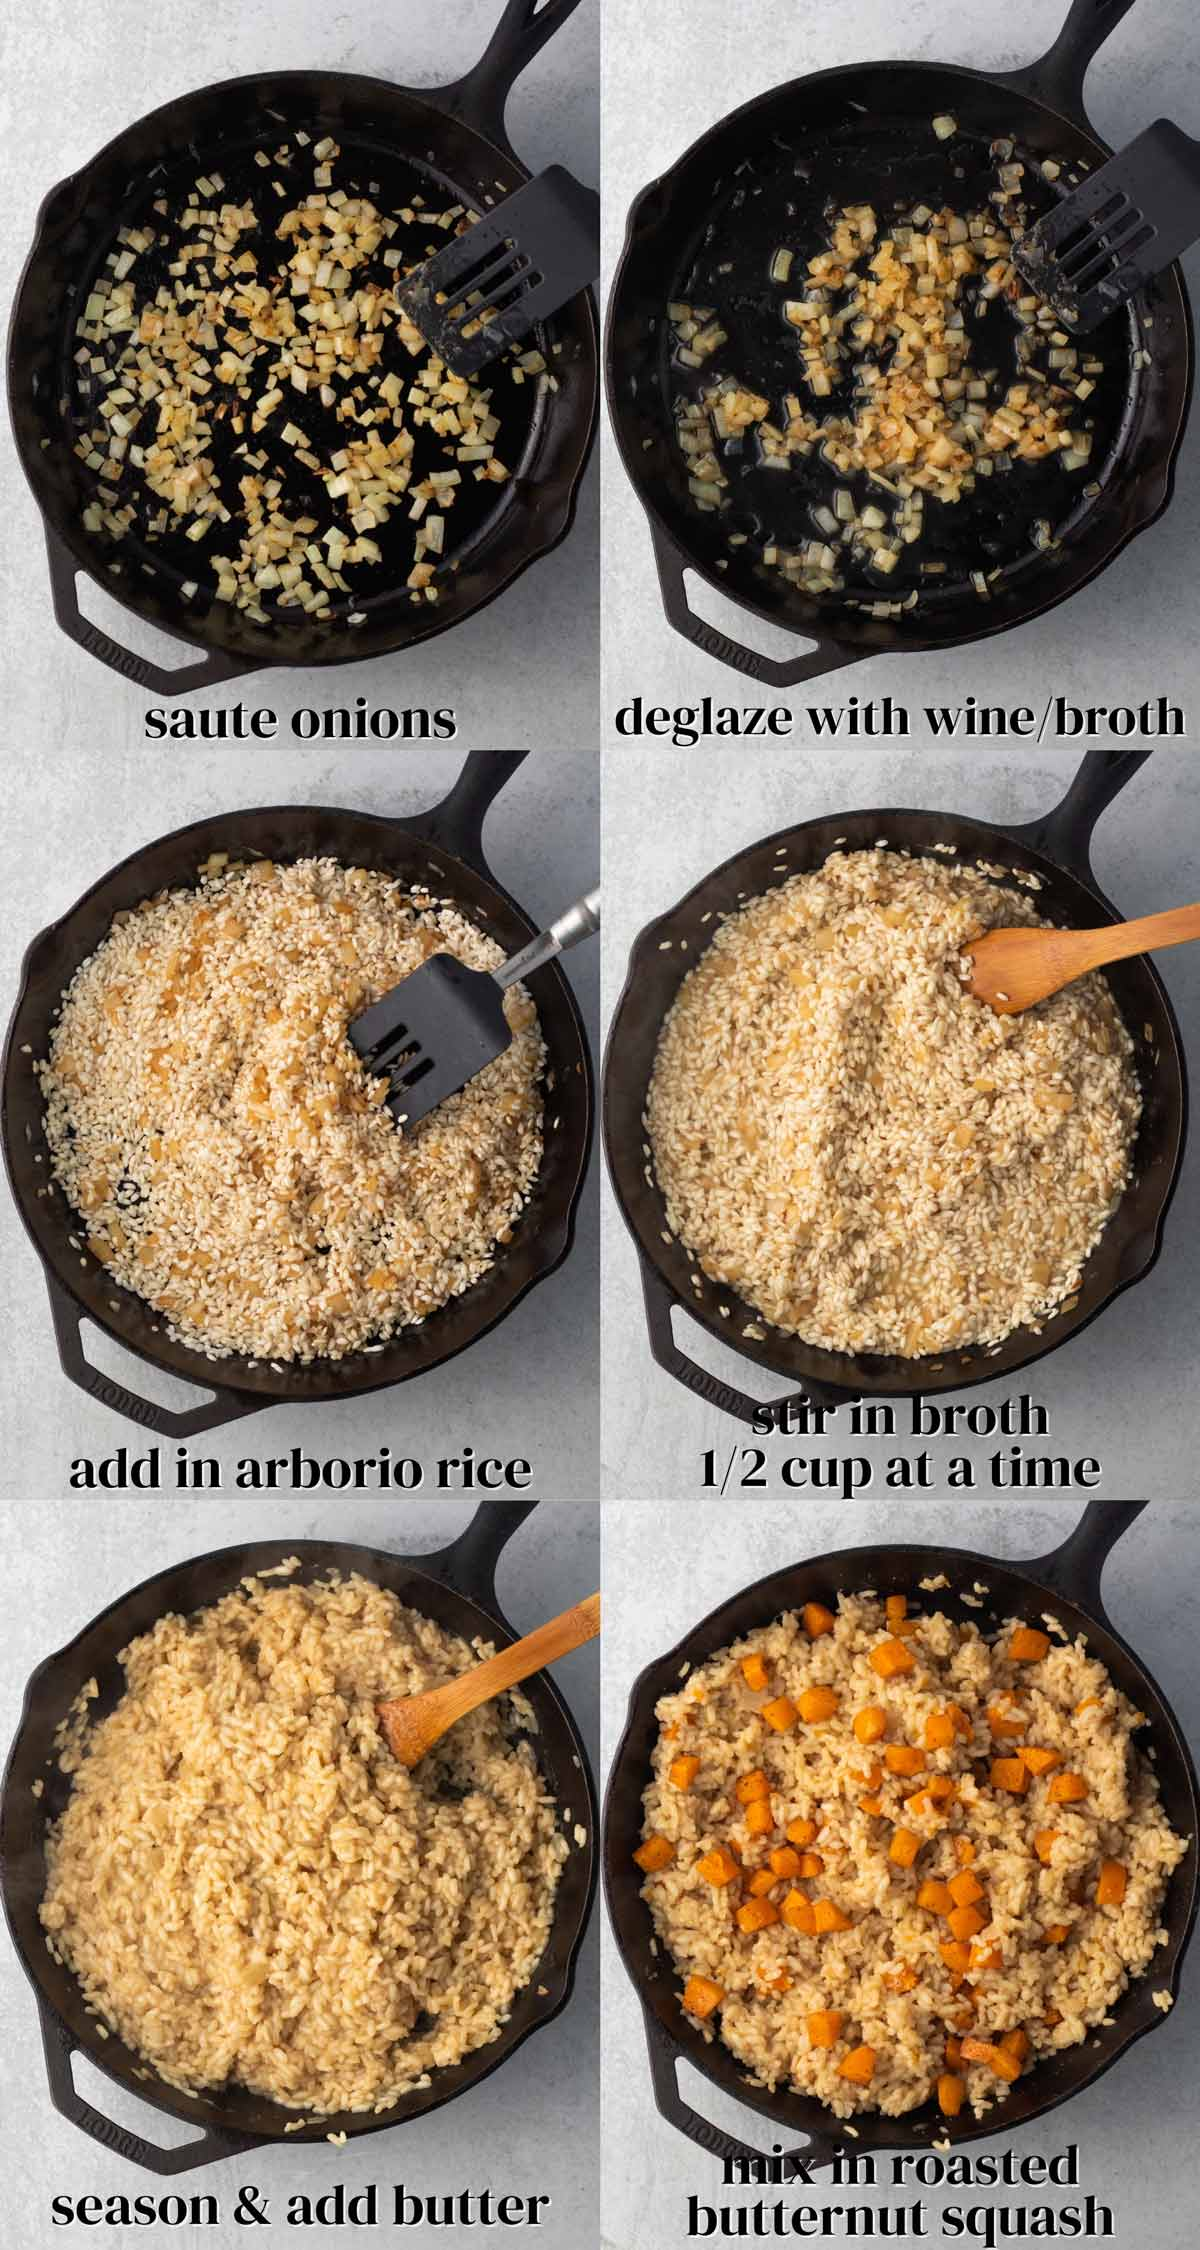 collage of the steps to make roasted butternut squash risotto with arborio rice